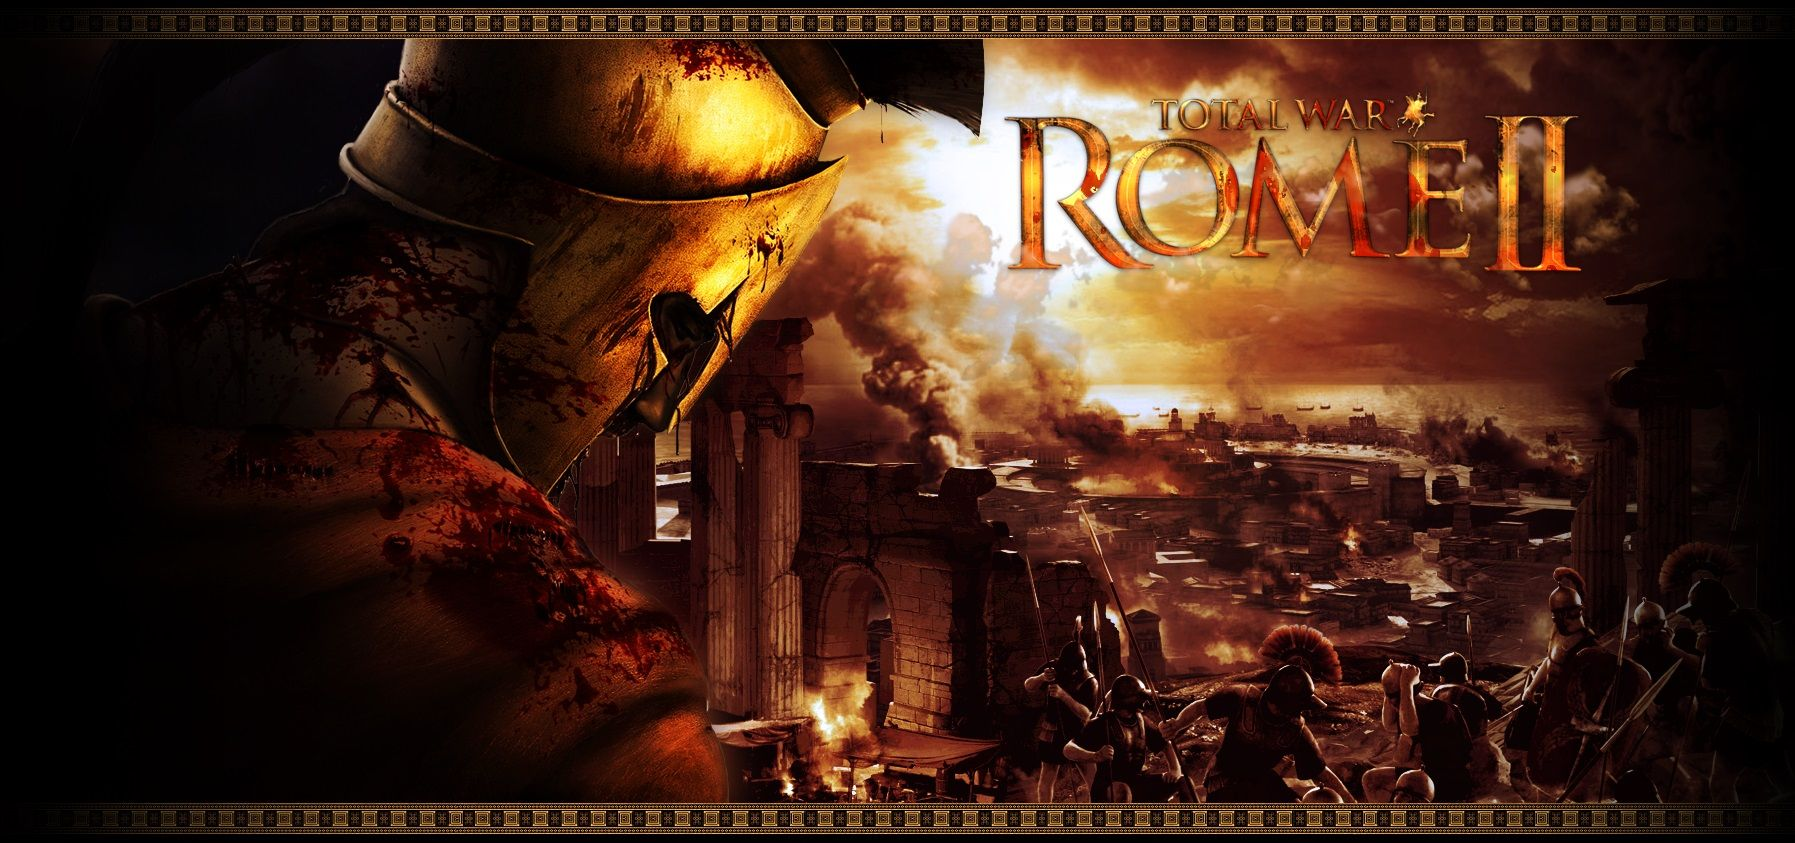 Pin by John Marzo on Rome 8th Century BCE to 476 CE | Neon ...